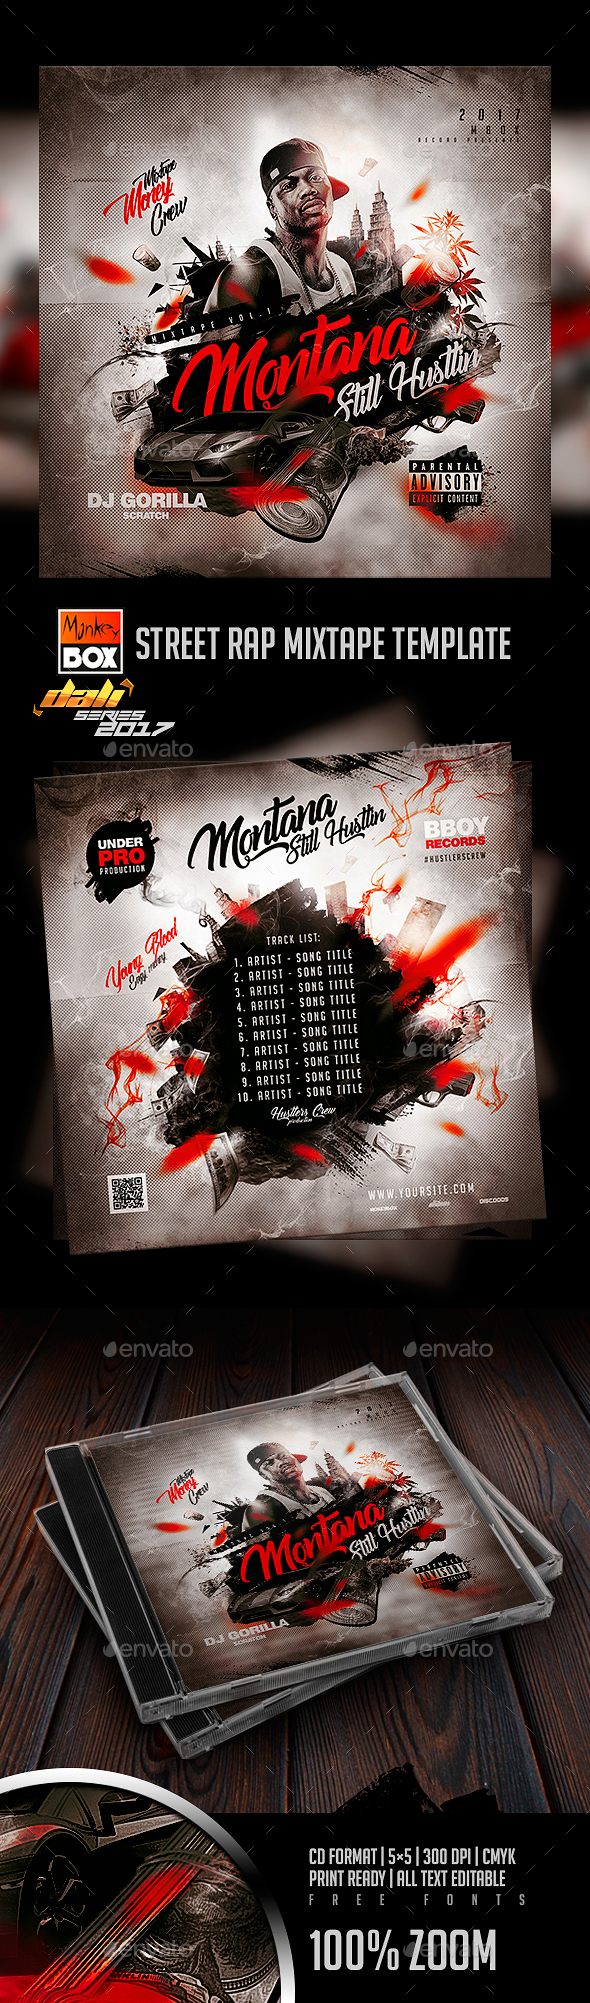 Street Rap Mixtape Template - CD & DVD Artwork Print Templates